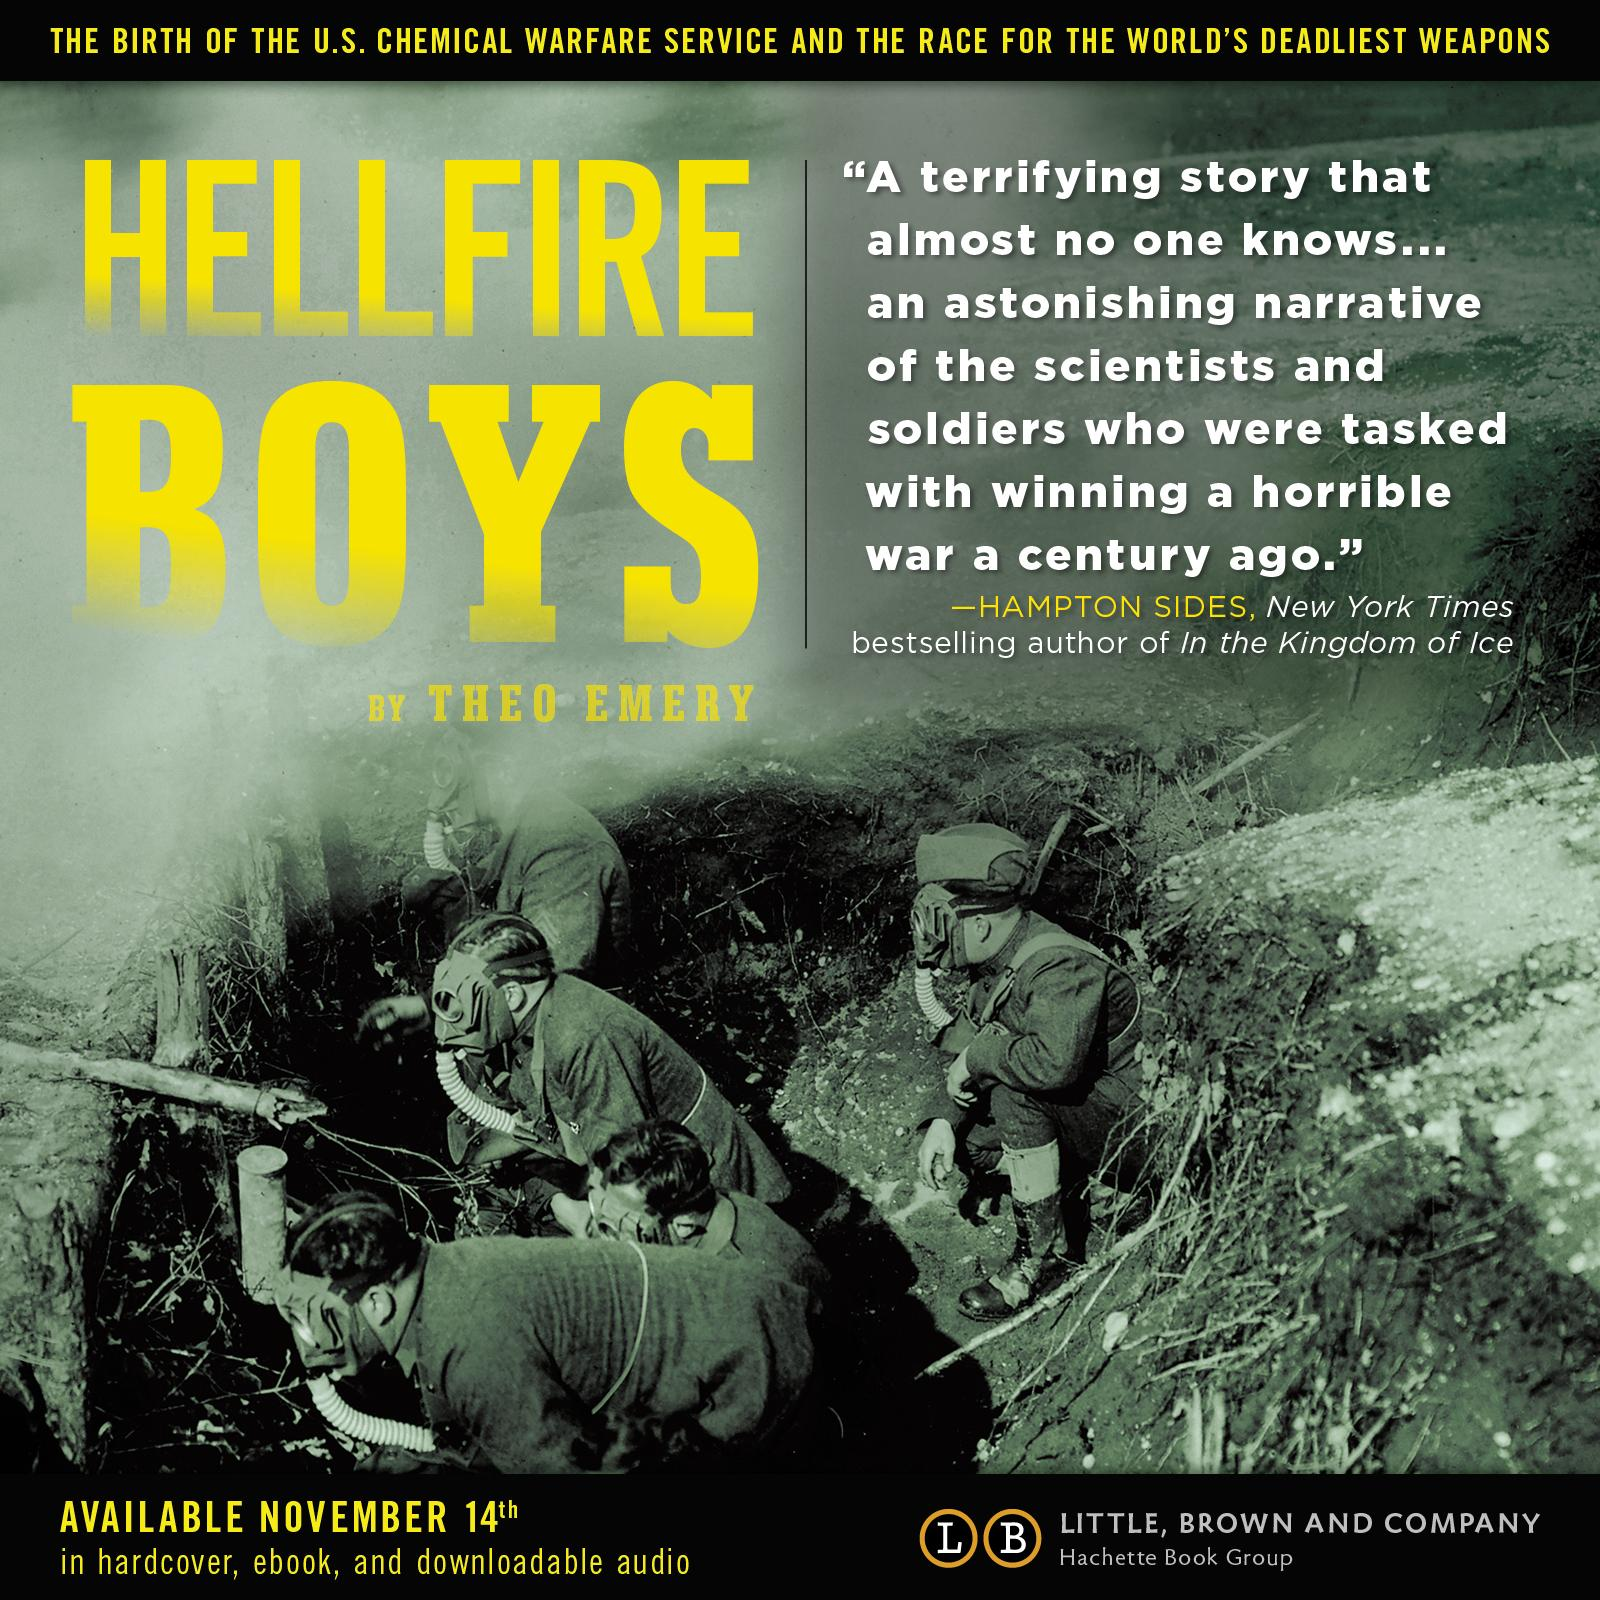 hellfire boys the birth of the us chemical warfare